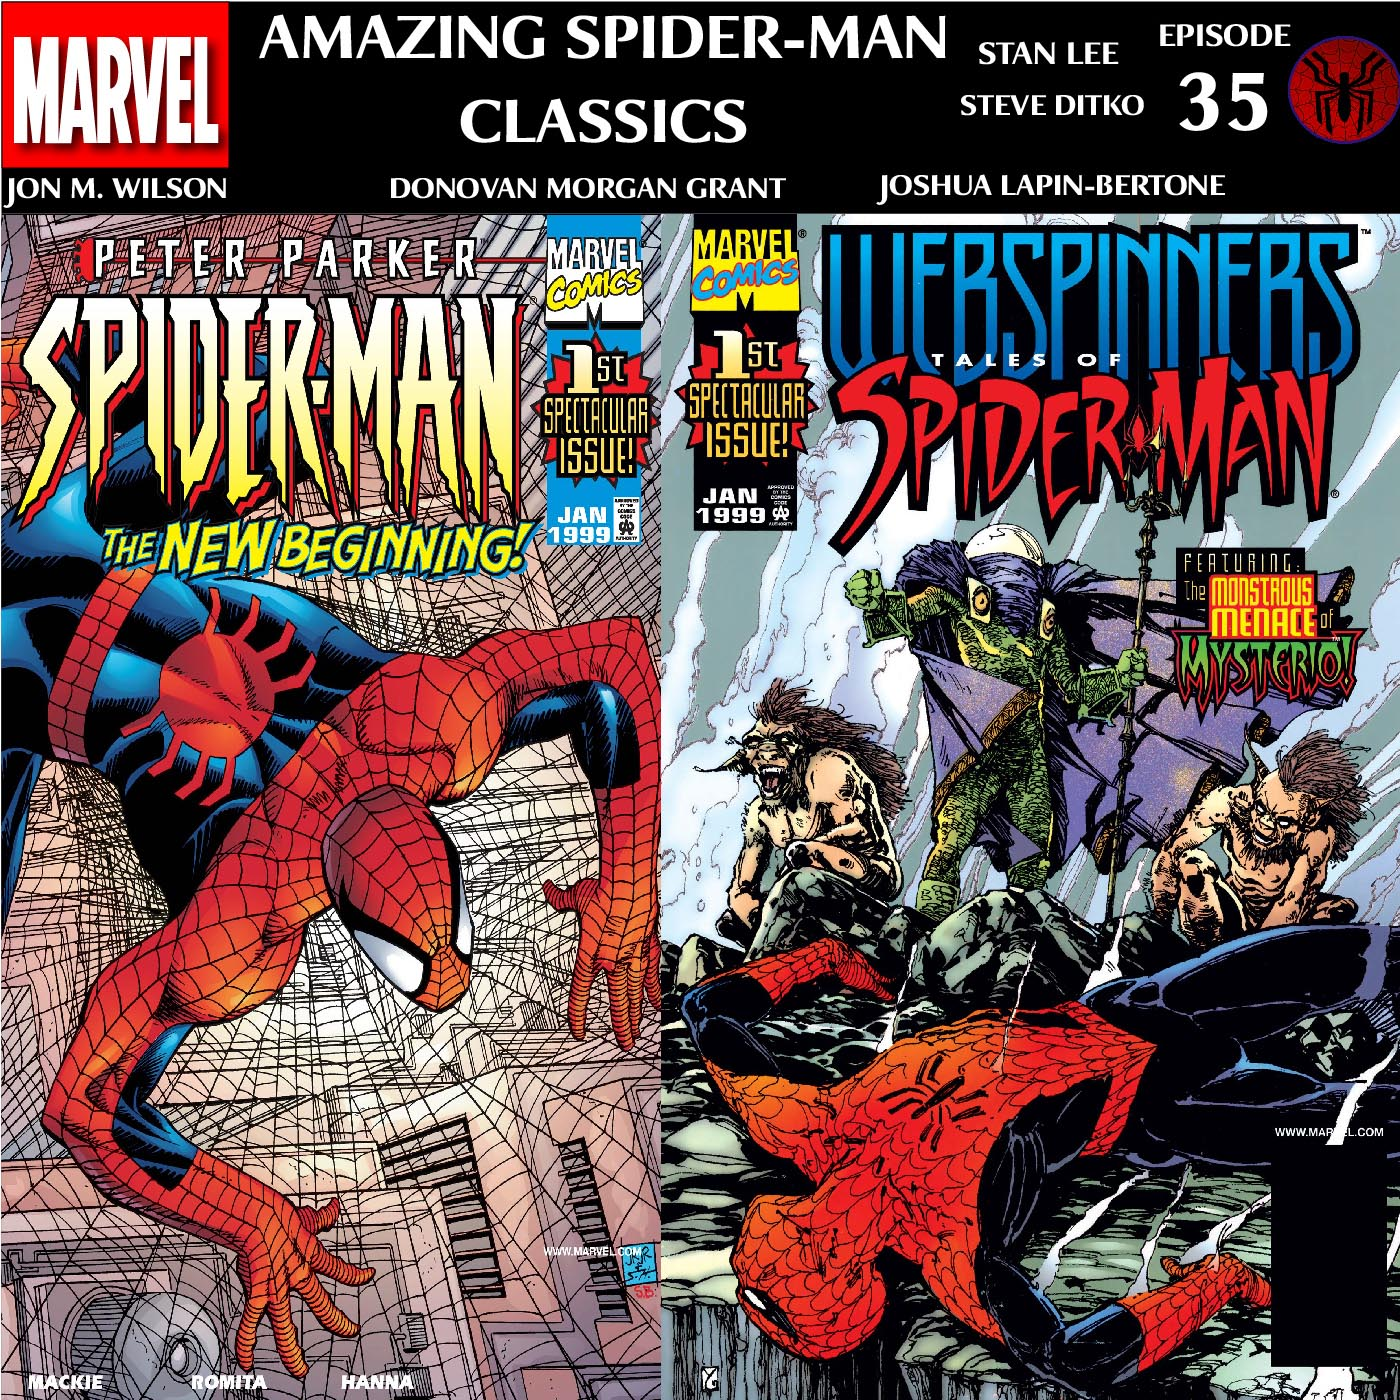 Amazing Spider-Man Classics Episode 35: Peter Parker (Vol II) 1 & Webspinners 1